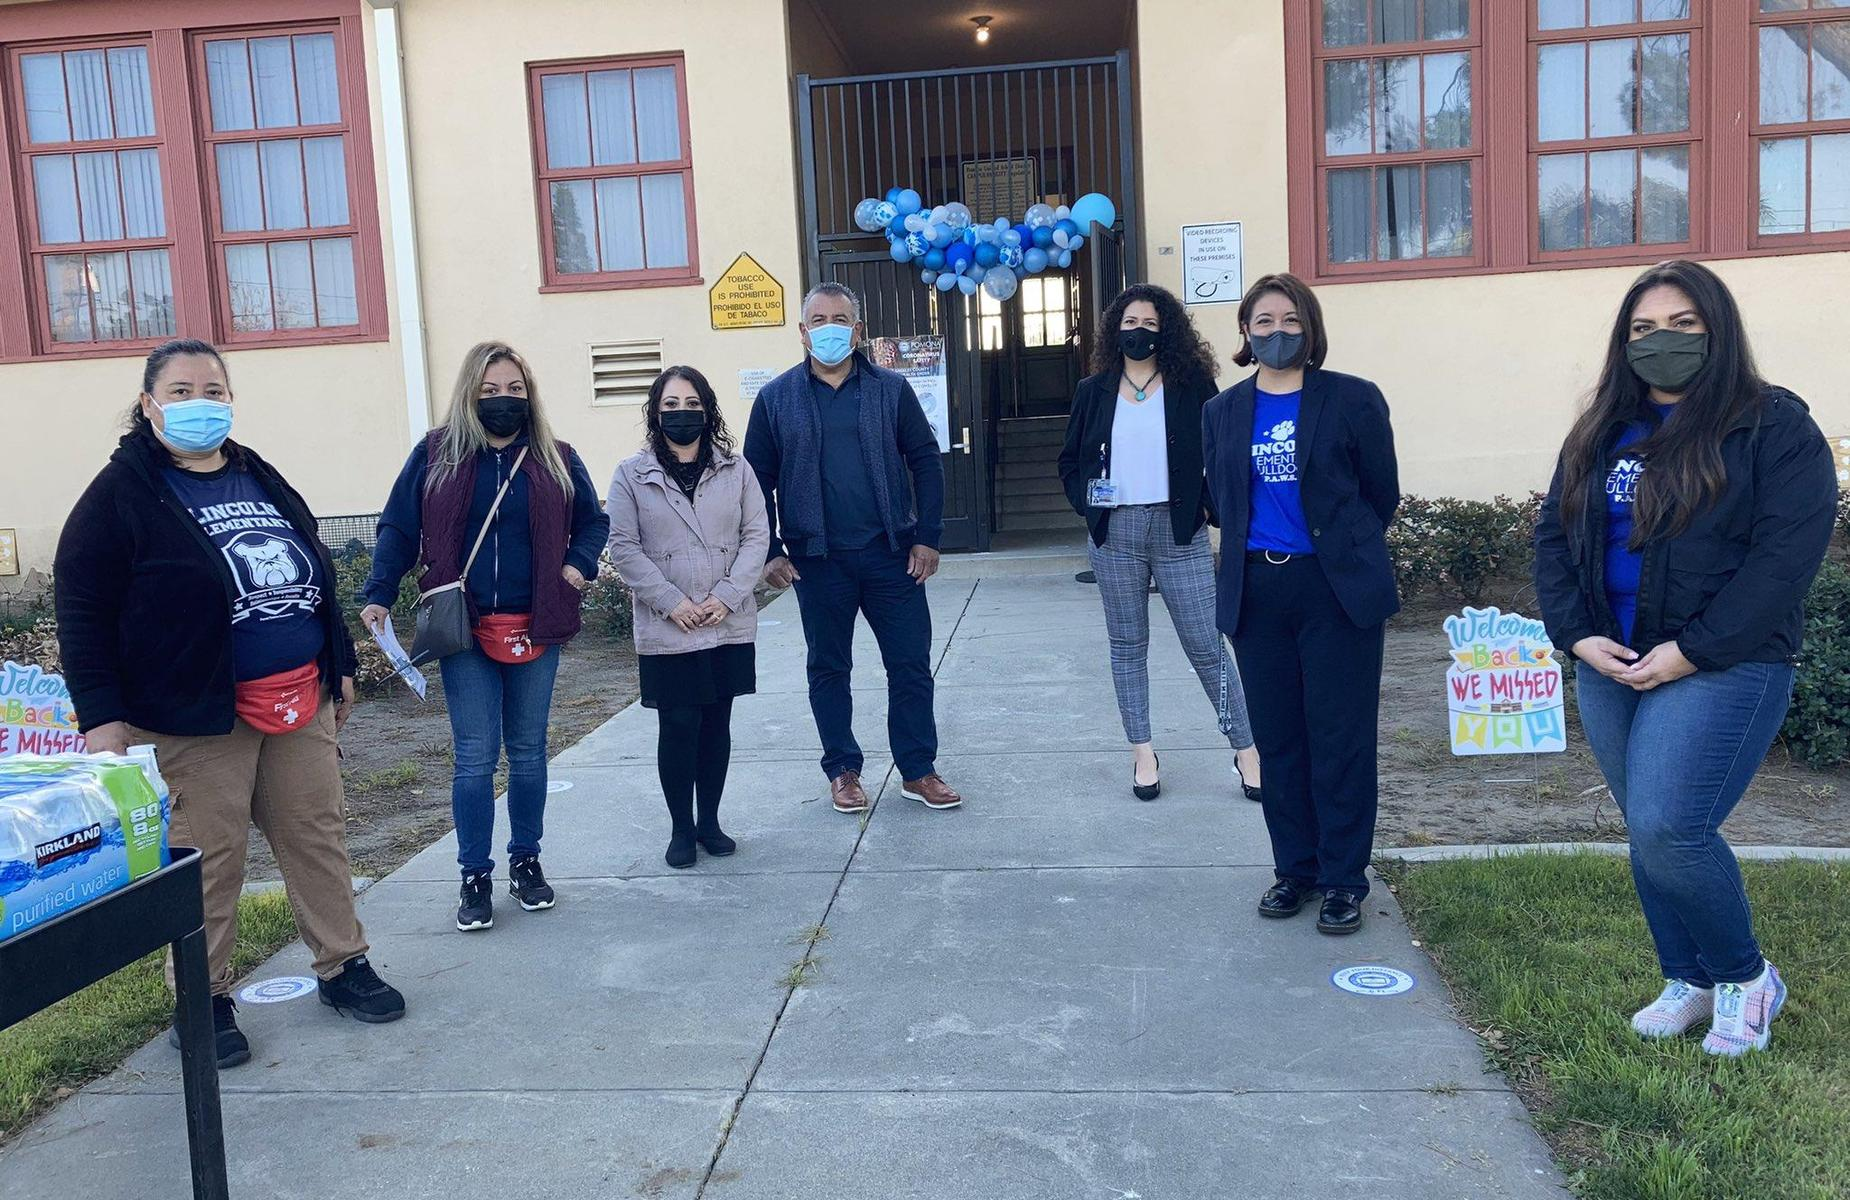 Welcome Back Lincoln Elementary! Board Member Lorena Gonzalez and Superintendent Martinez Welcoming Students! #proud2bepusd   Schedules available at: https://proudtobe.pusd.org/apps/pages/covid19studentupdates